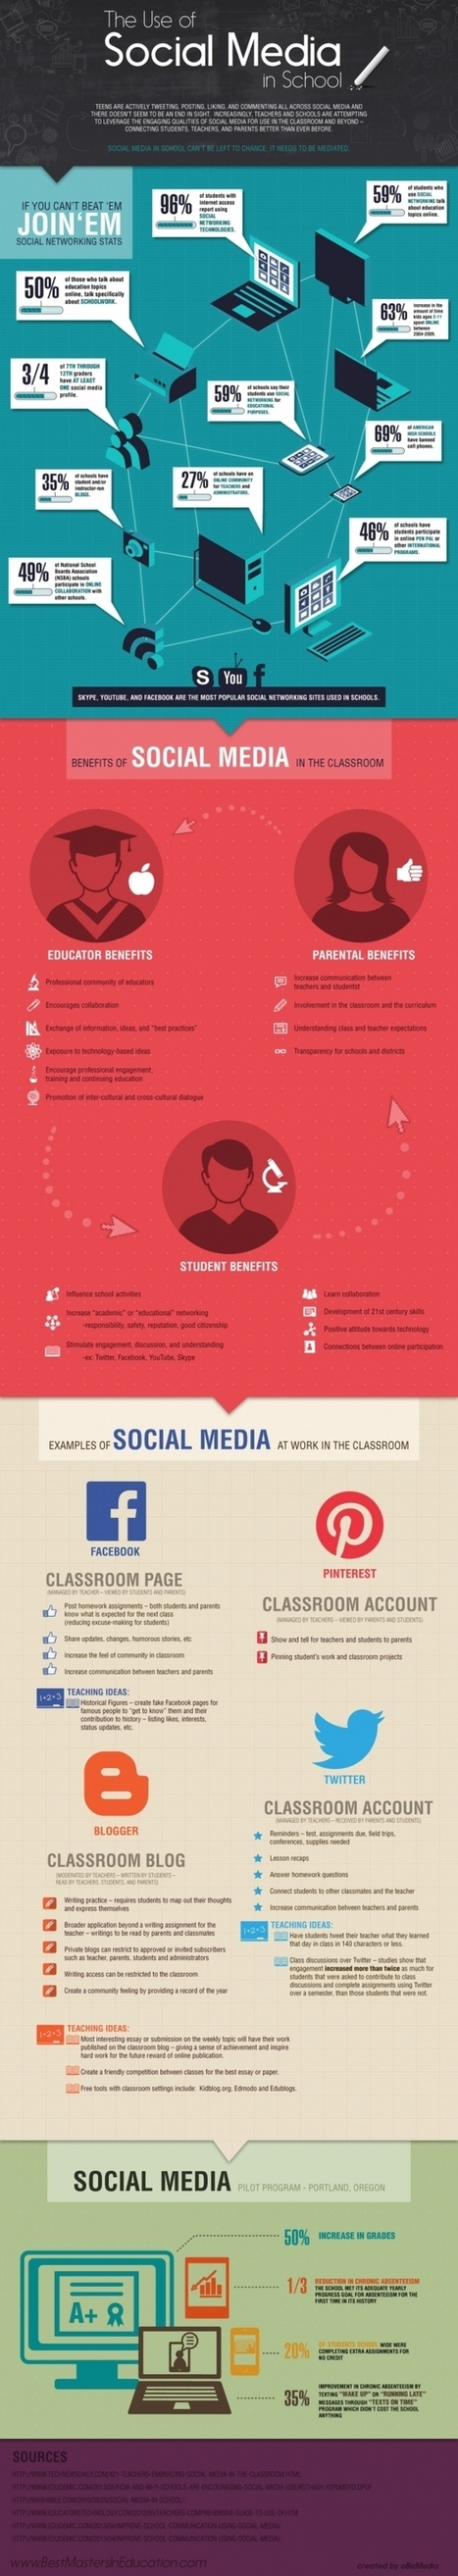 Infographic: The Use of Social Media in School | information analyst | Scoop.it